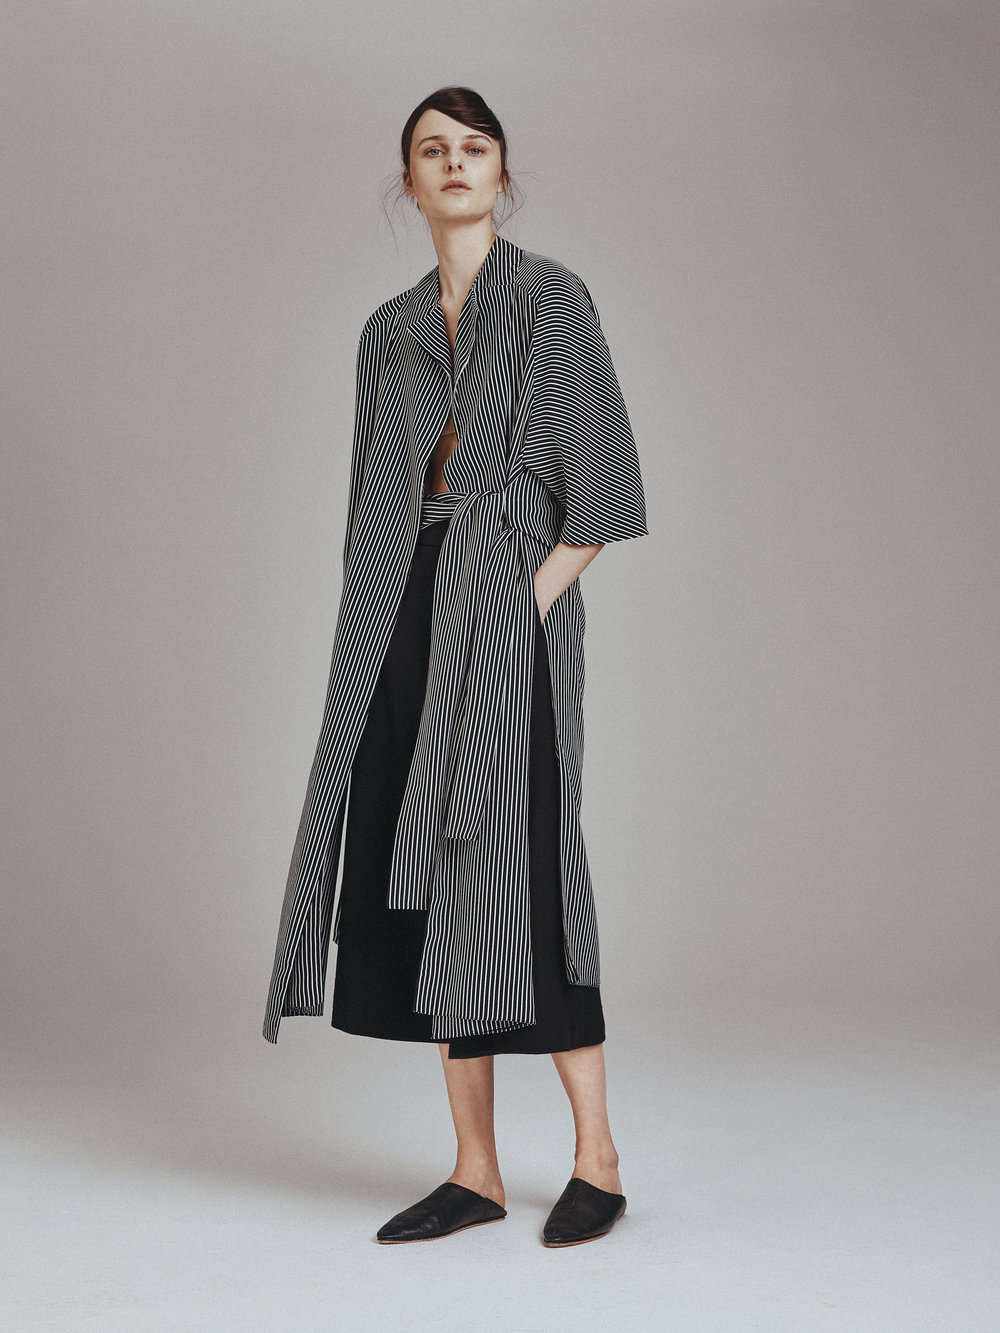 GARANCE JACKET   Crepe de Chine  -   ELSA PANTS  Wool Jersey   Stretch Charmeuse Lining      Contact for inquiry